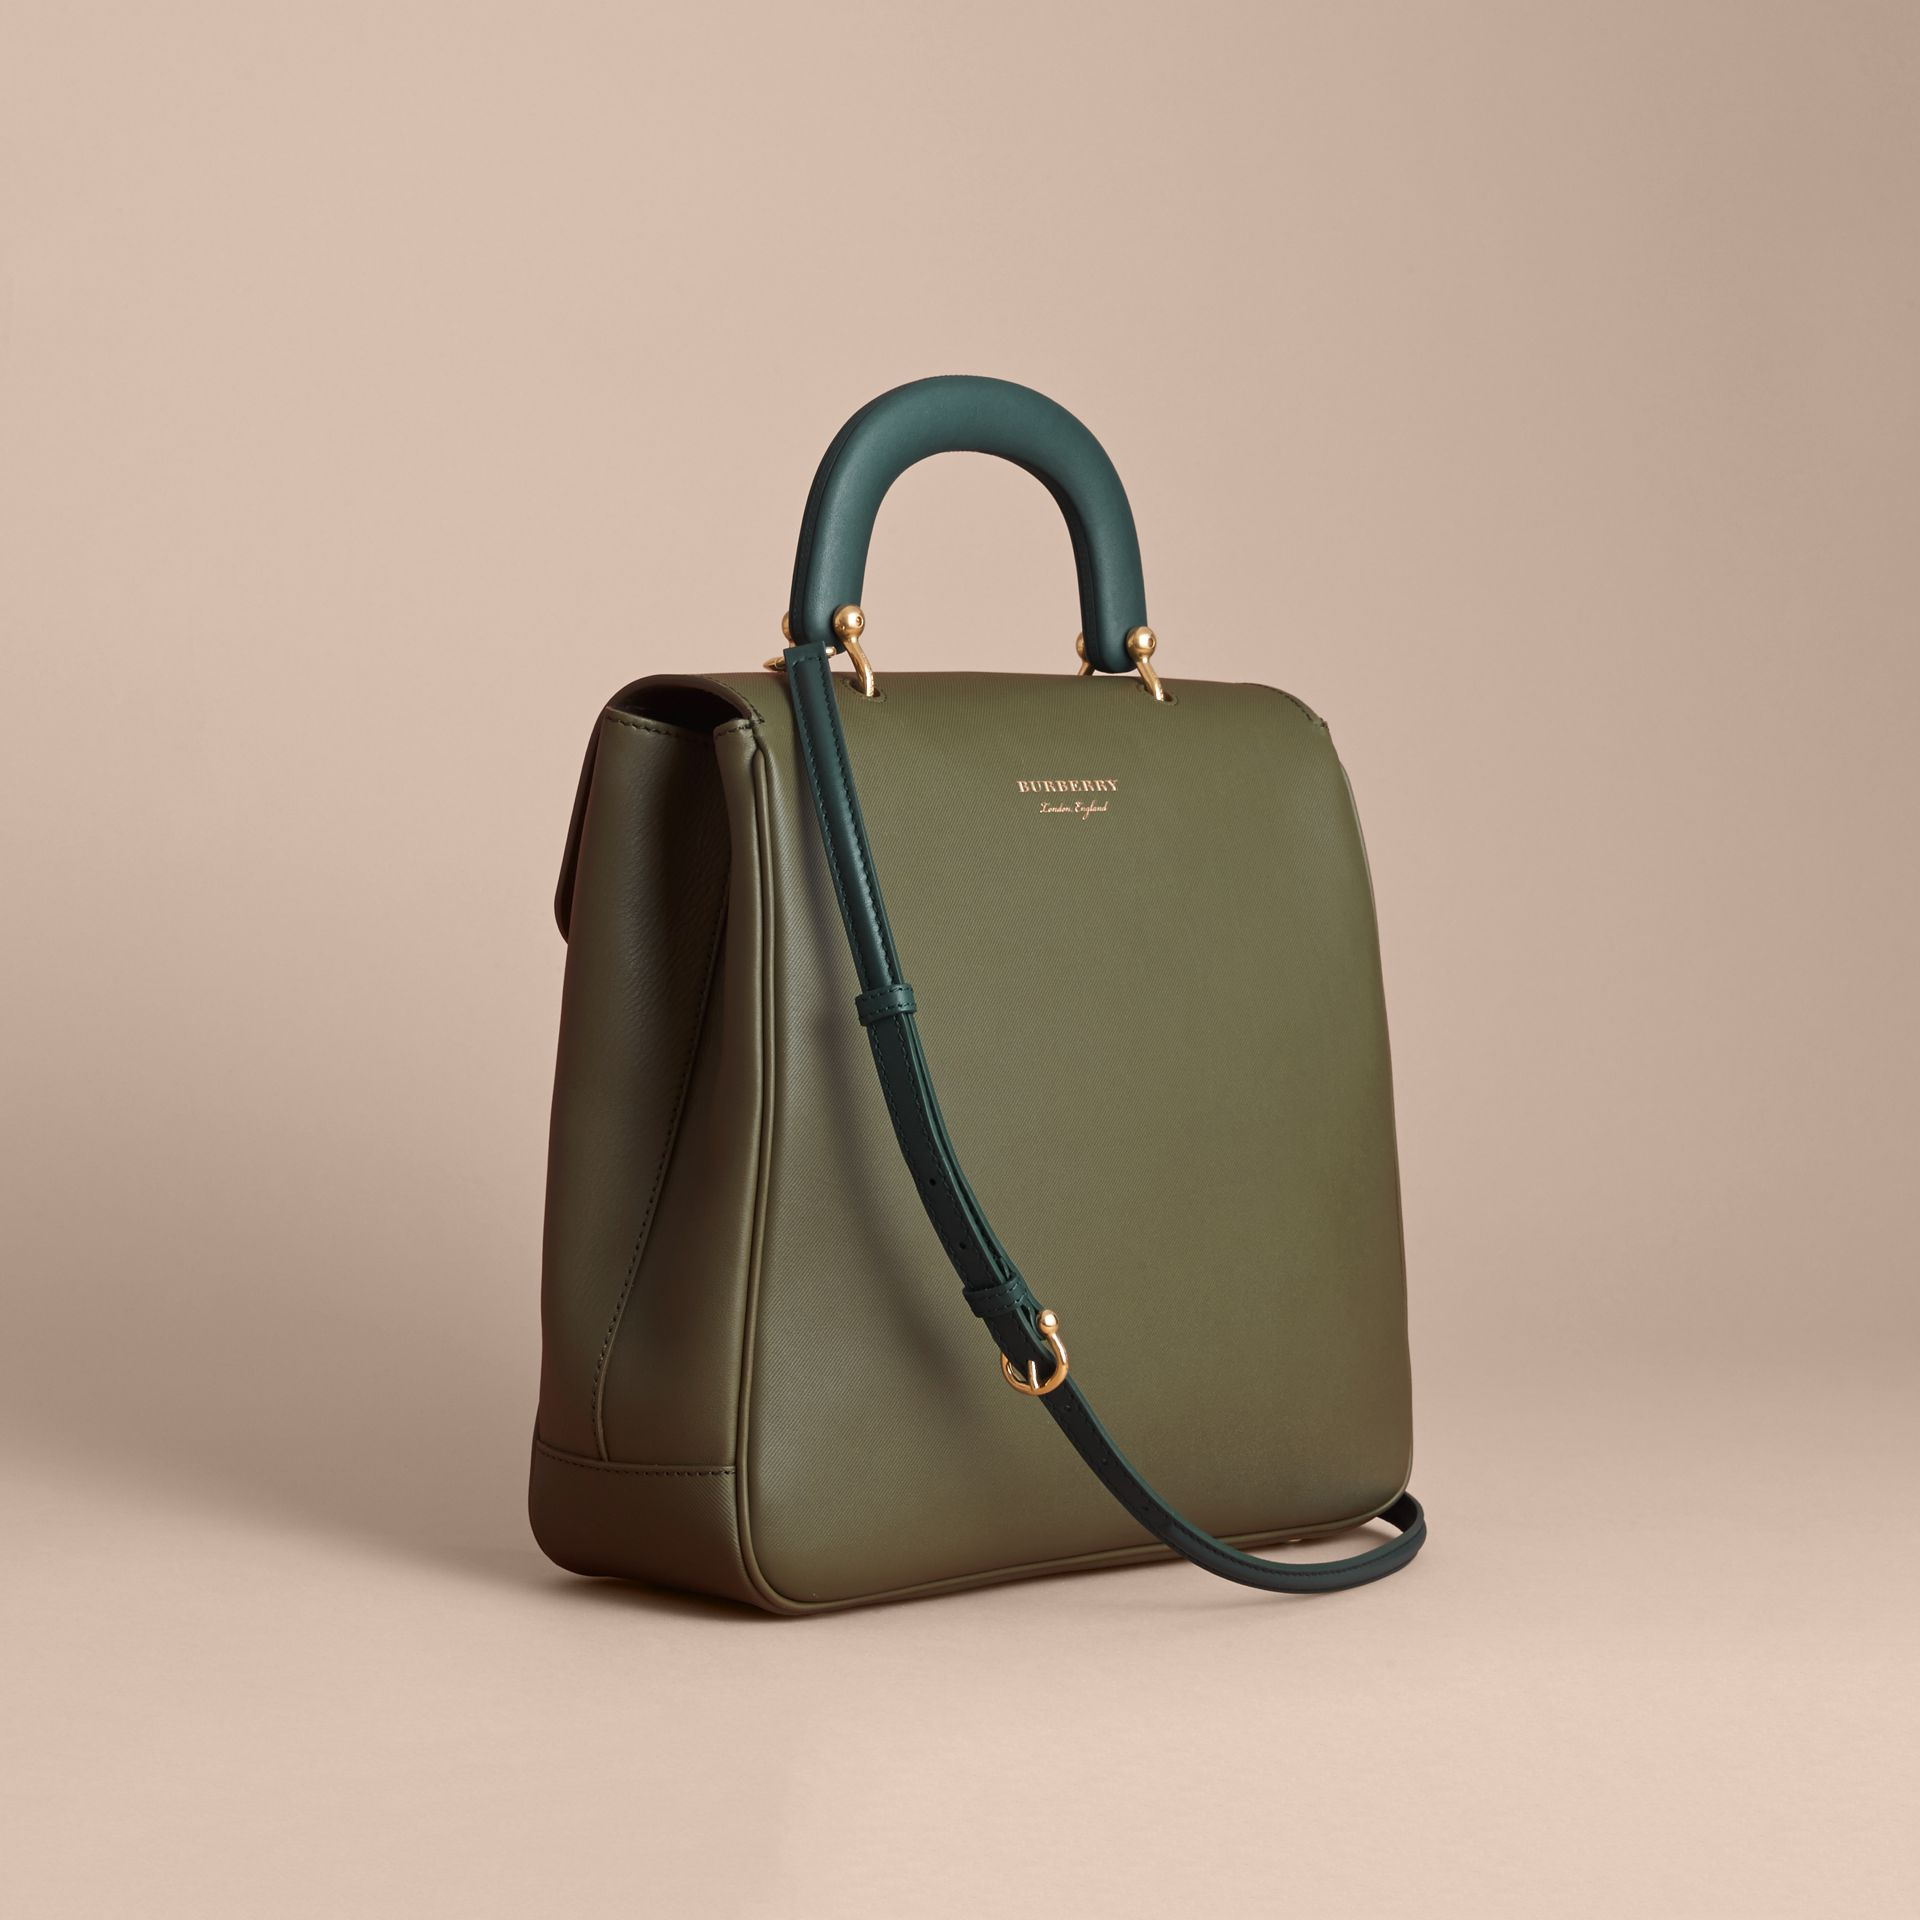 The Large DK88 Top Handle Bag in Moss Green - Women | Burberry - gallery image 3